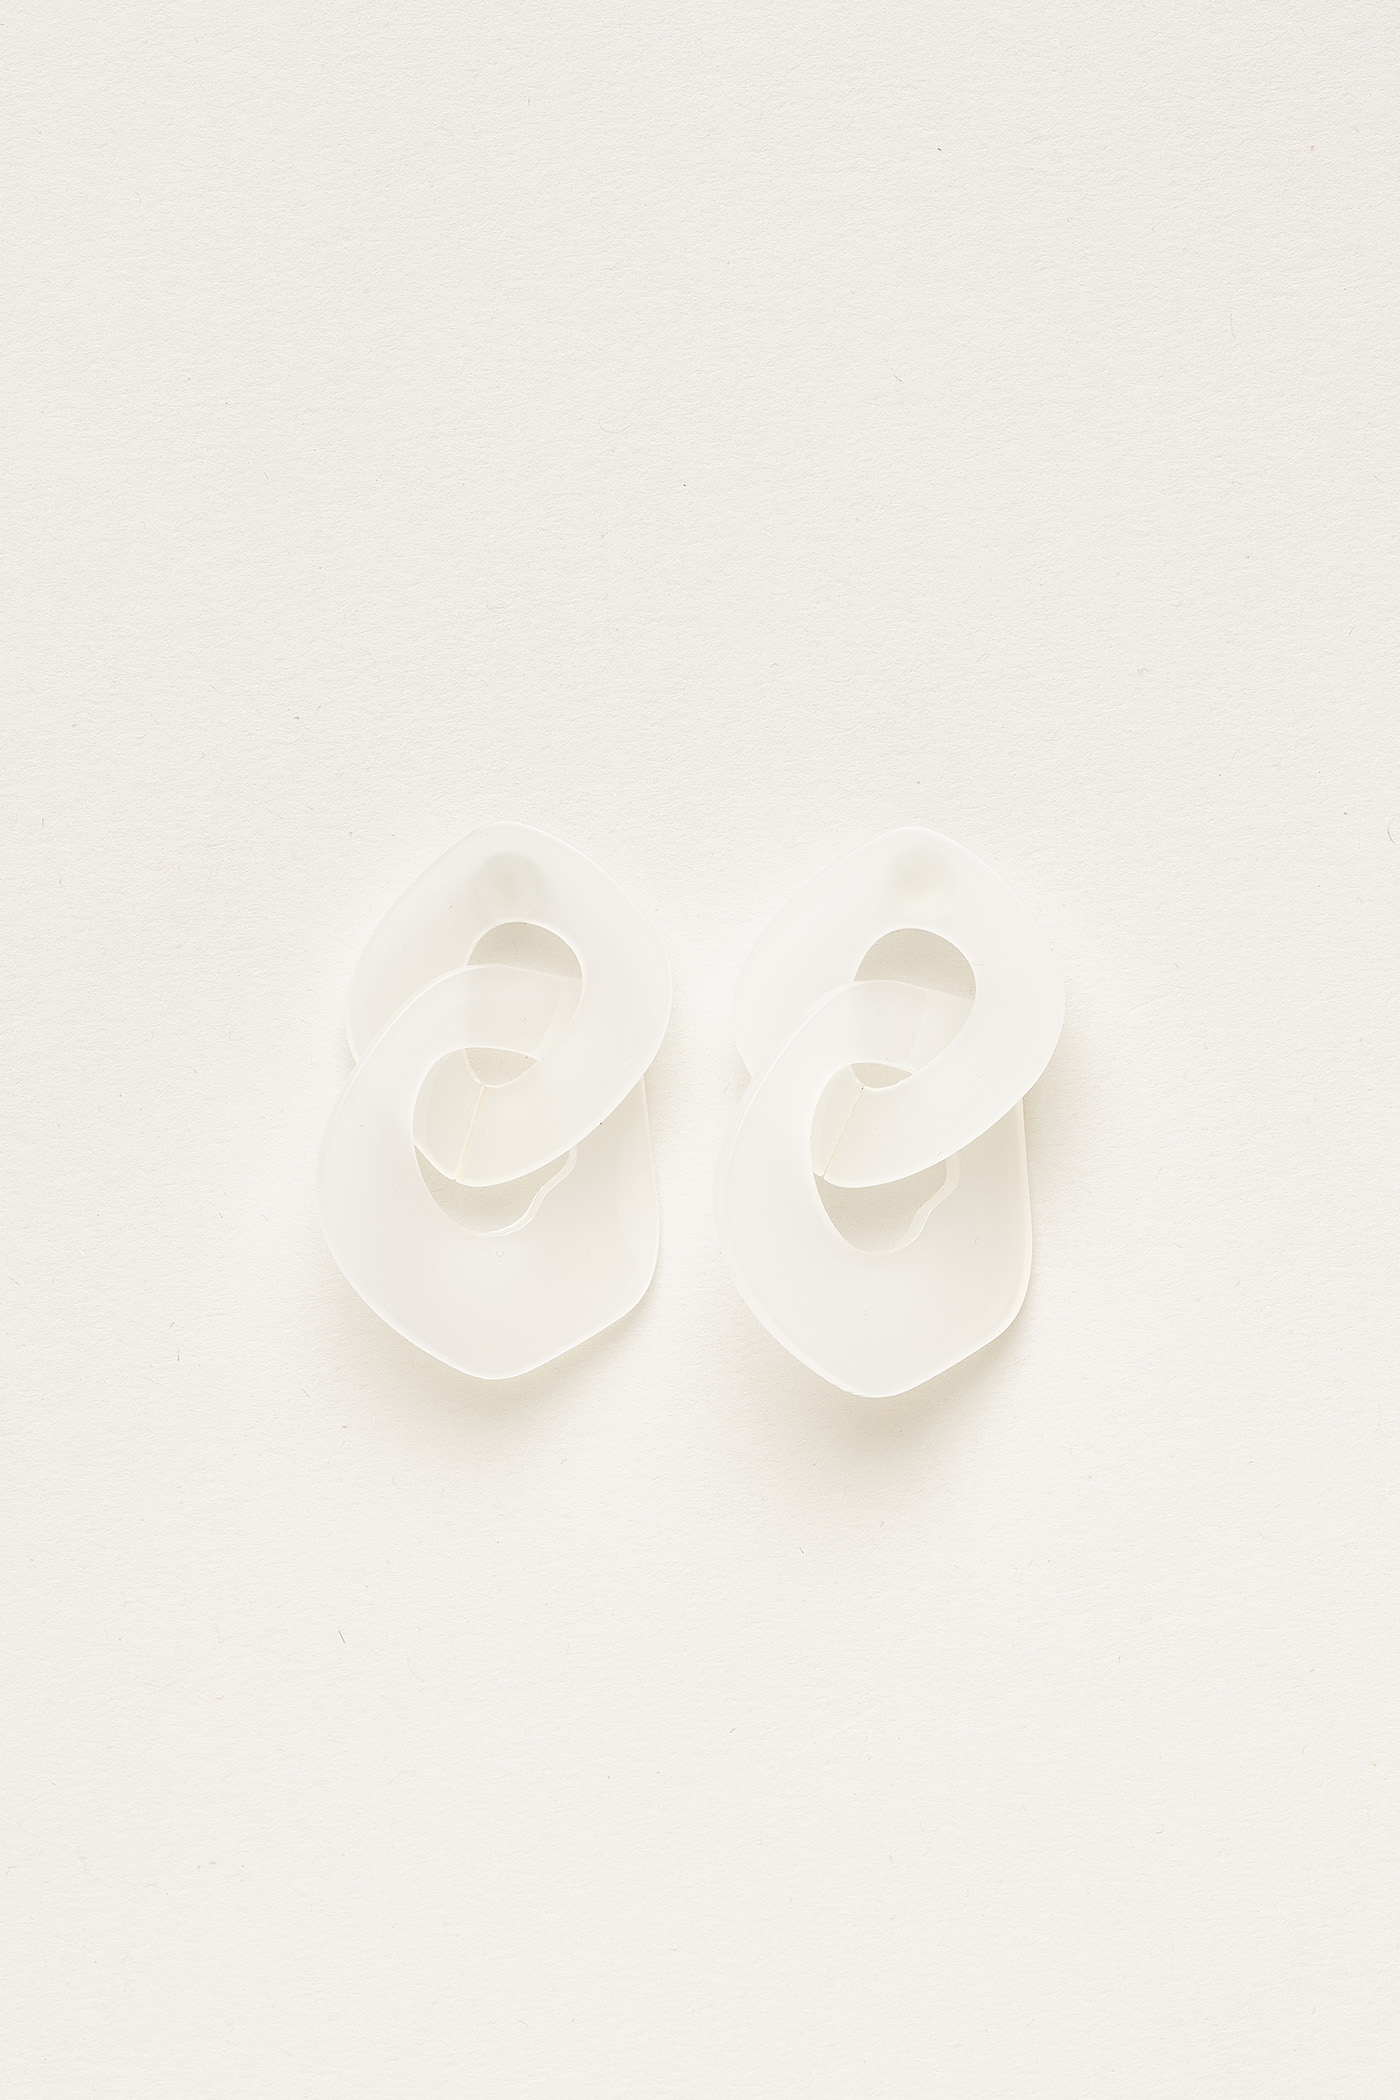 Carlson Acrylic Link Earrings